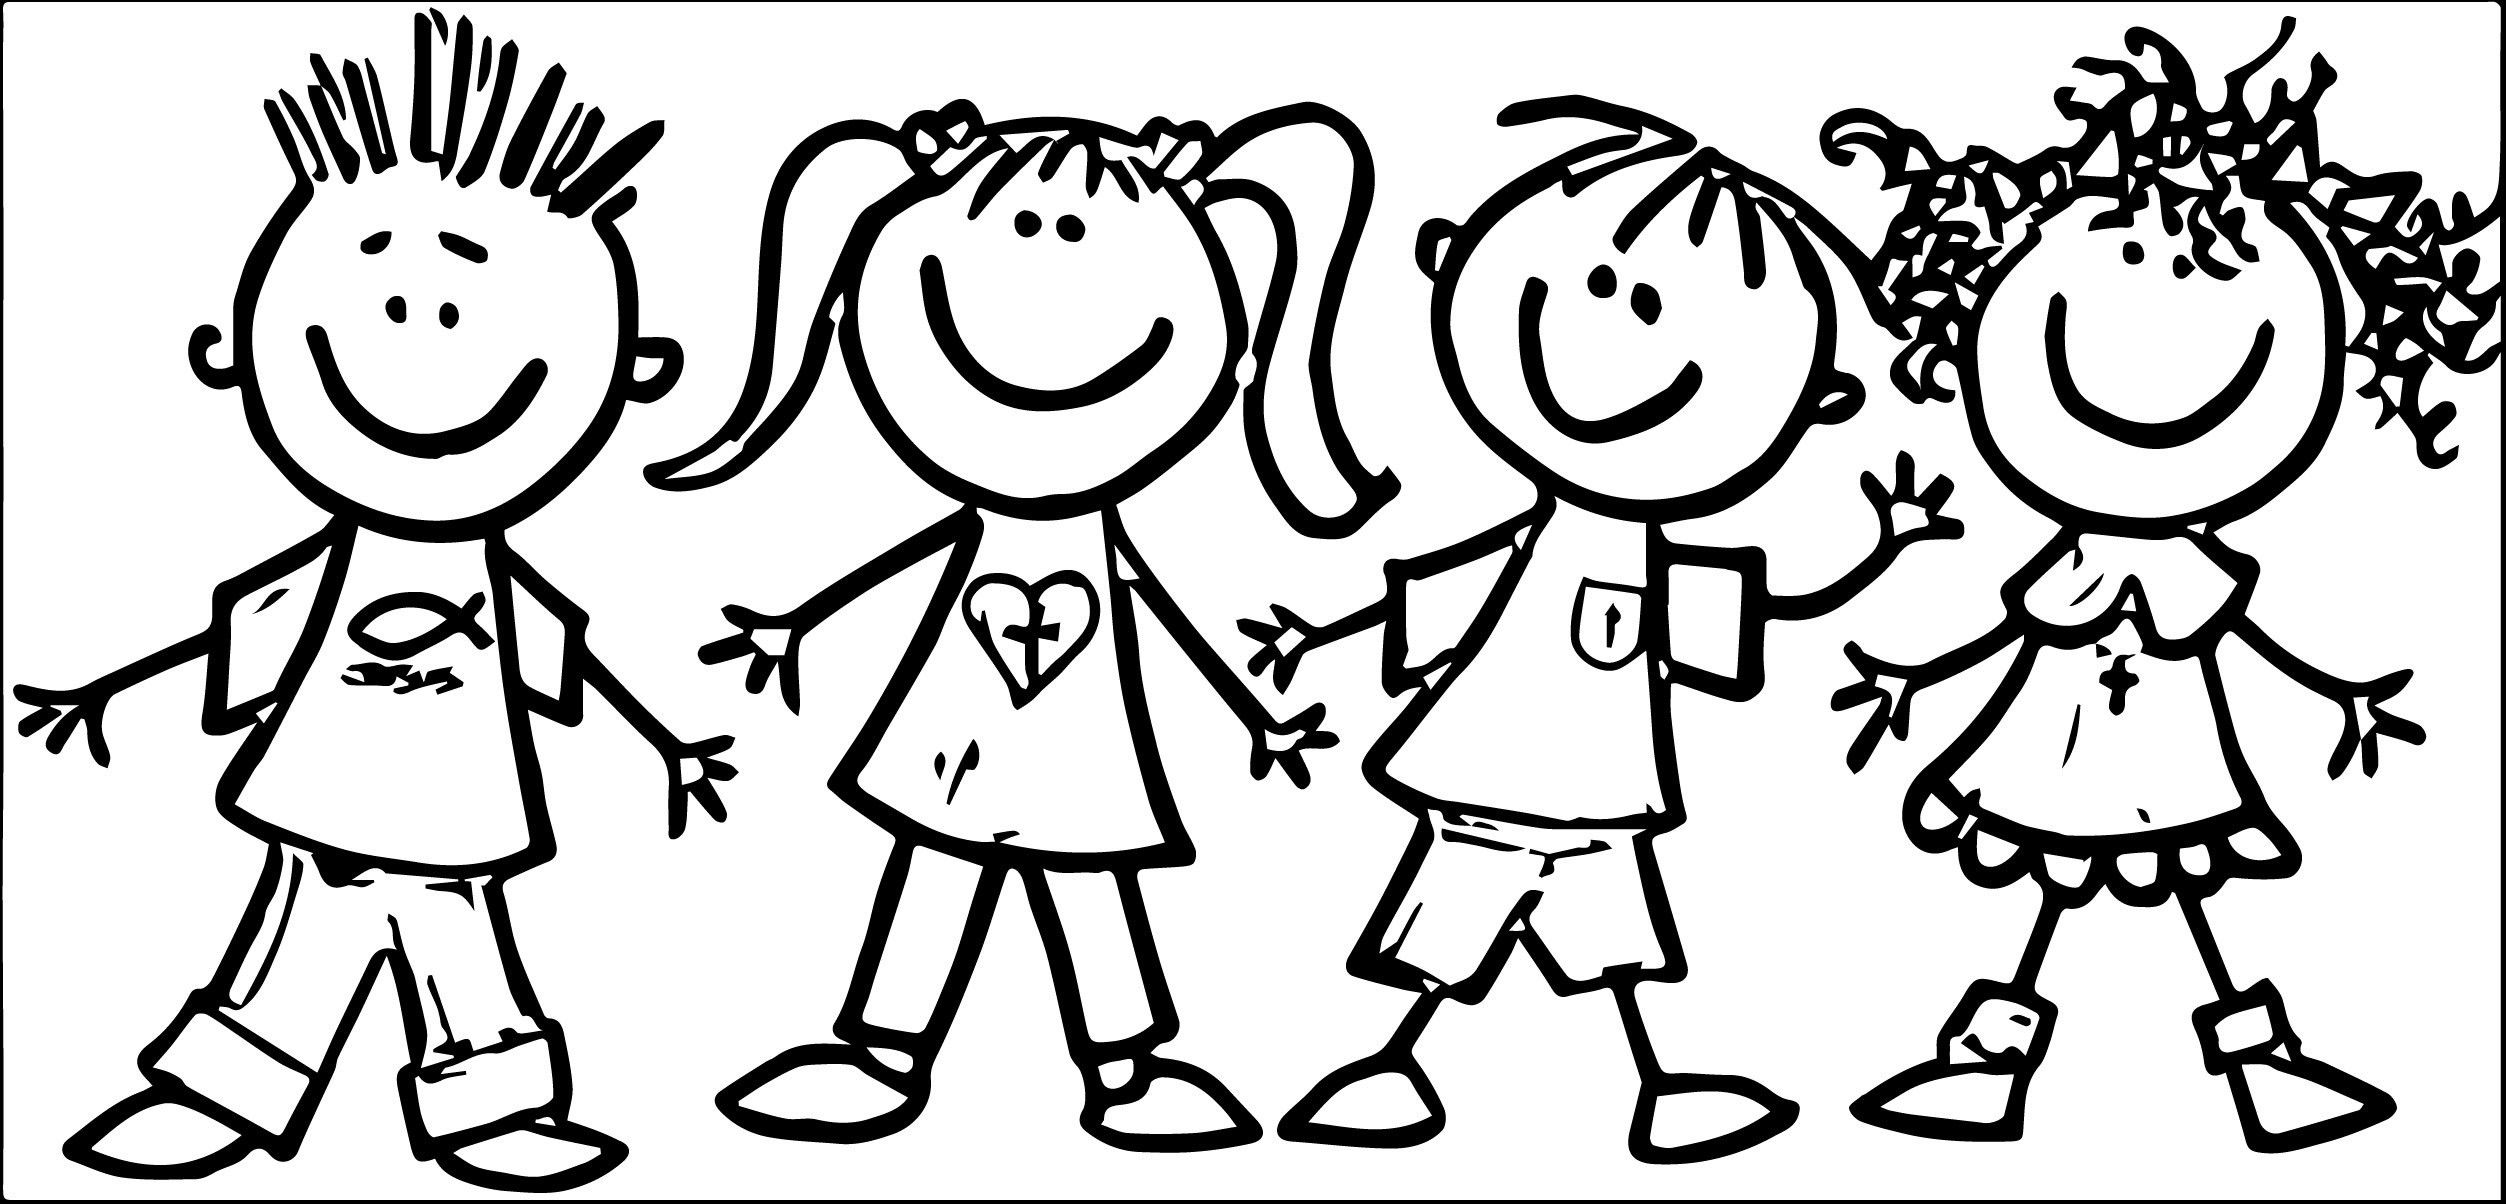 Kindergarten Math Clipart Black And White ClipartUse.